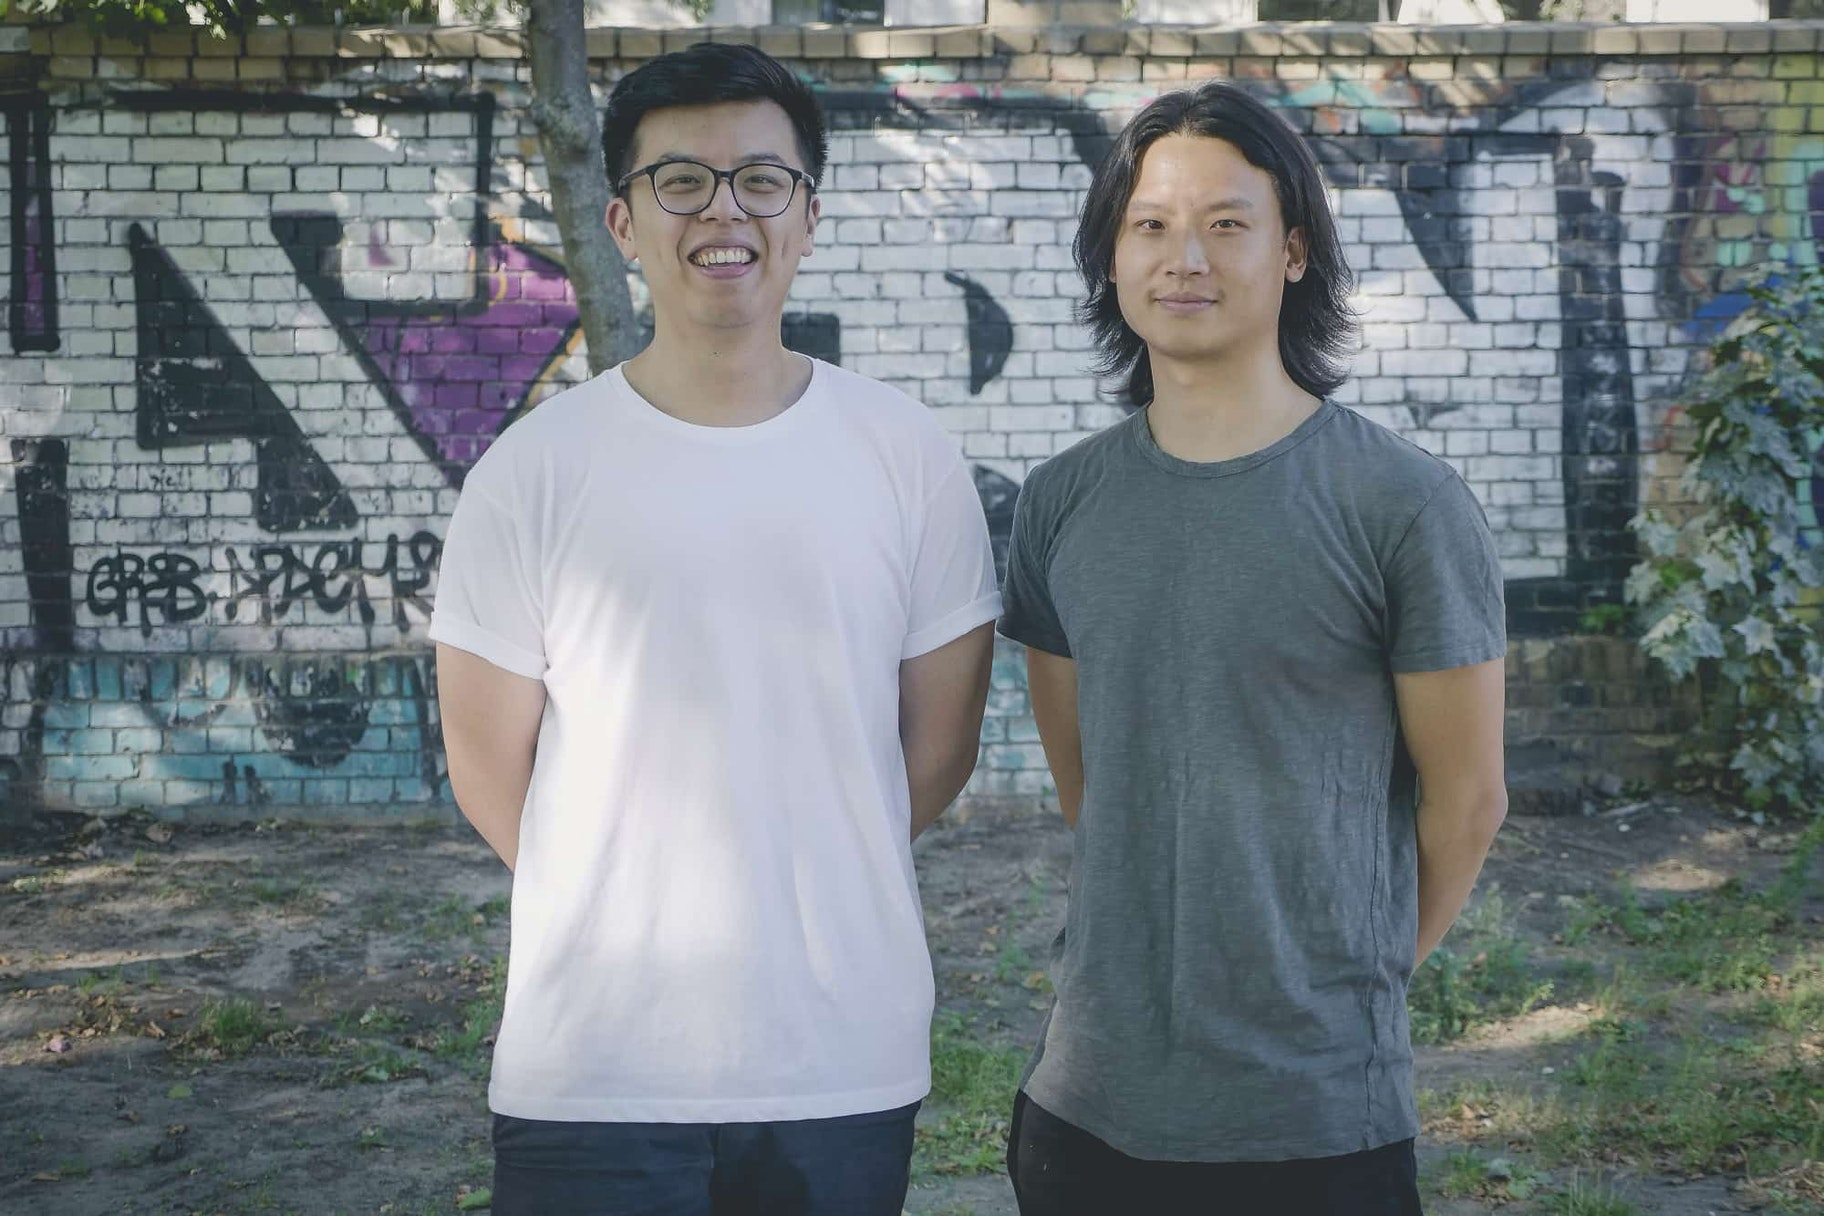 Jacky and Albert stand against a graffiti'd brick wall